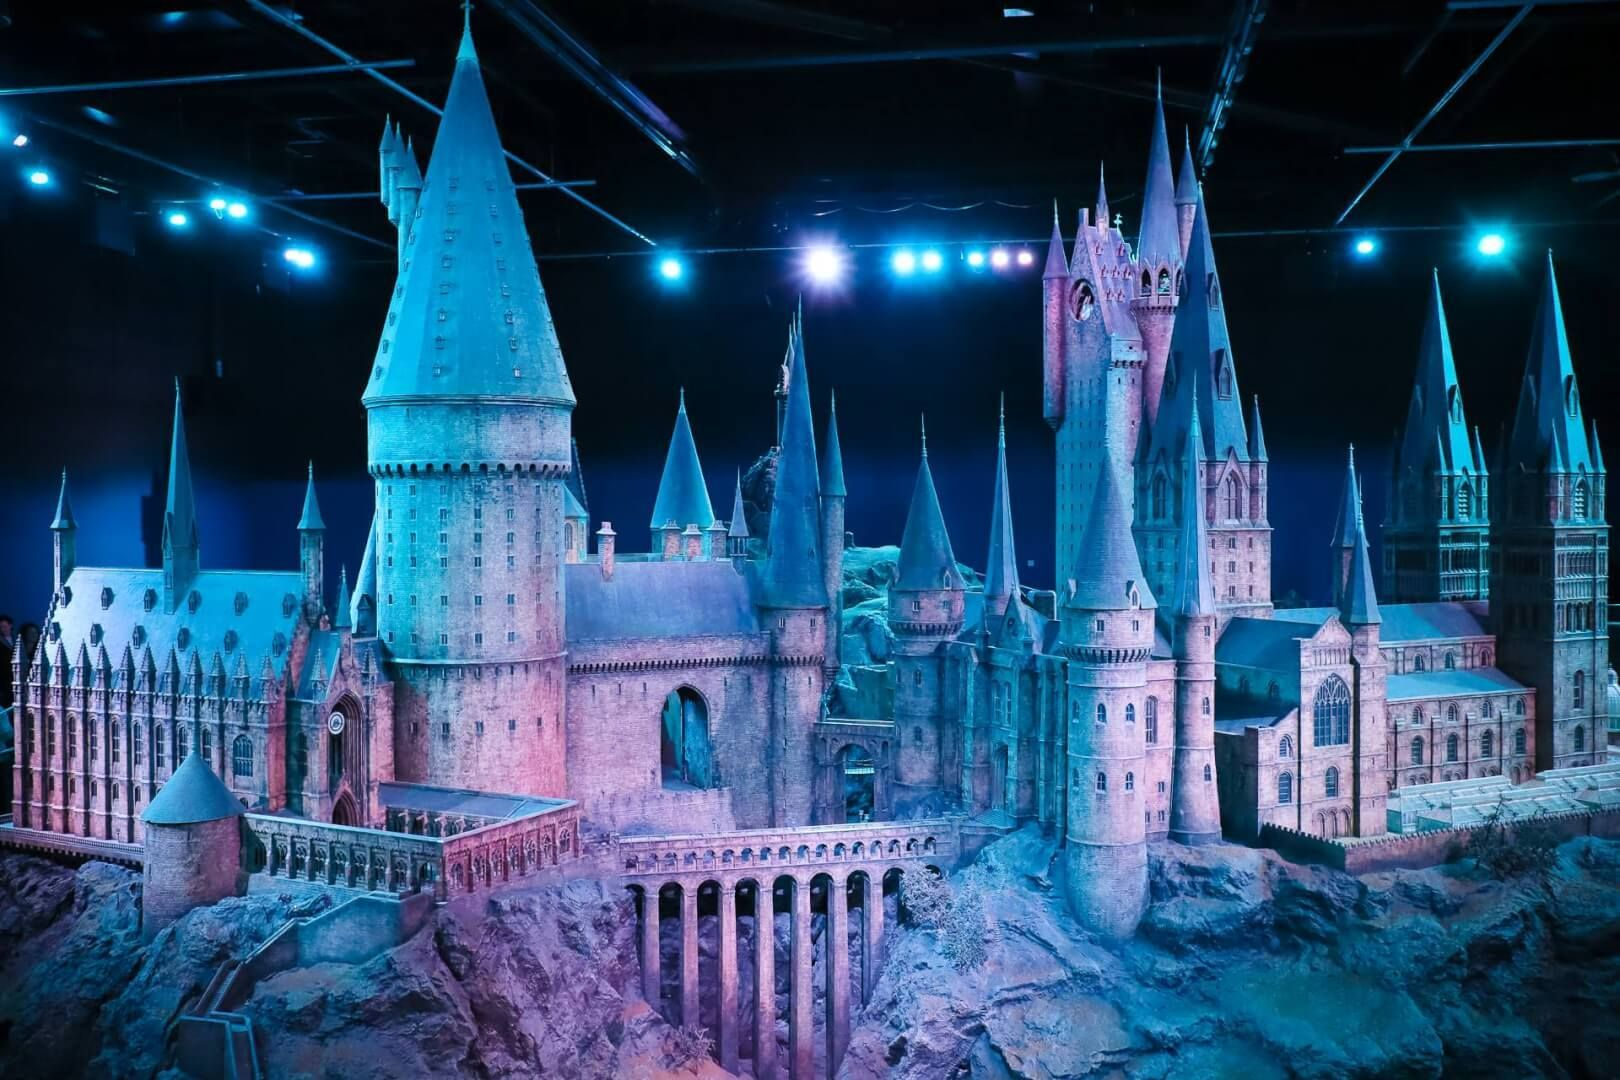 The making of Harry Potter: Warner Bros Studio Tour London full tour | Inside the Magic